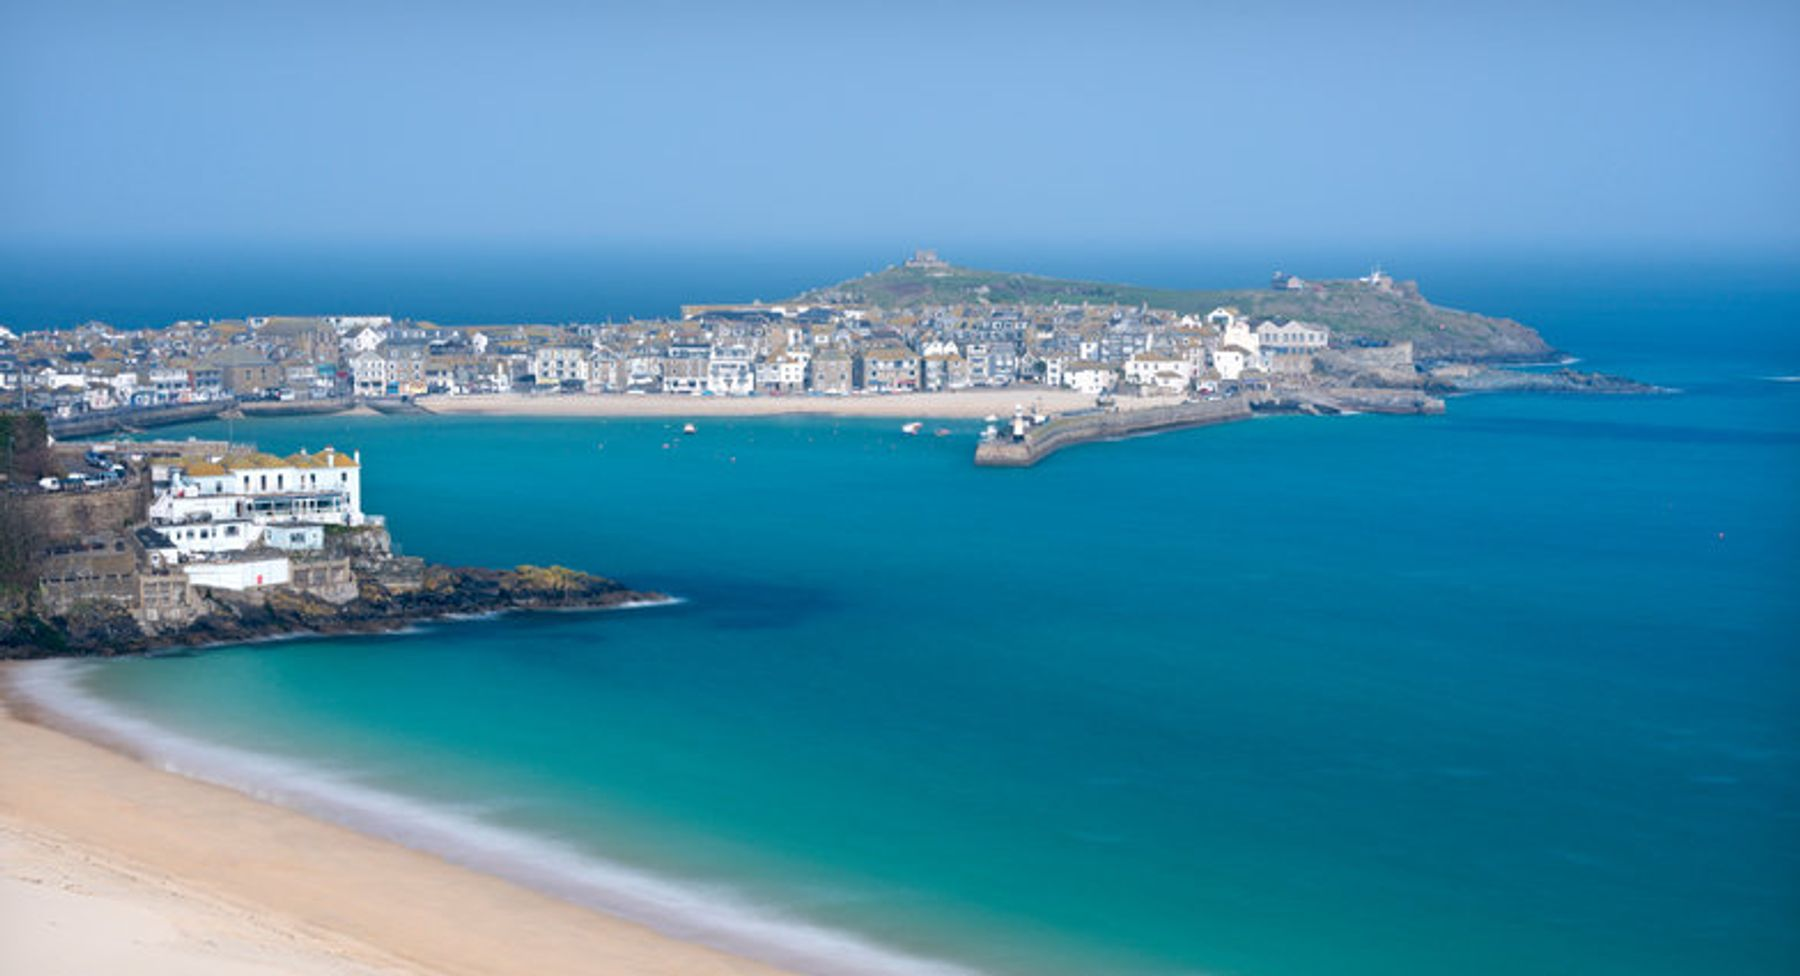 View of the charming coastal town of St. Ives, Cornwall, England